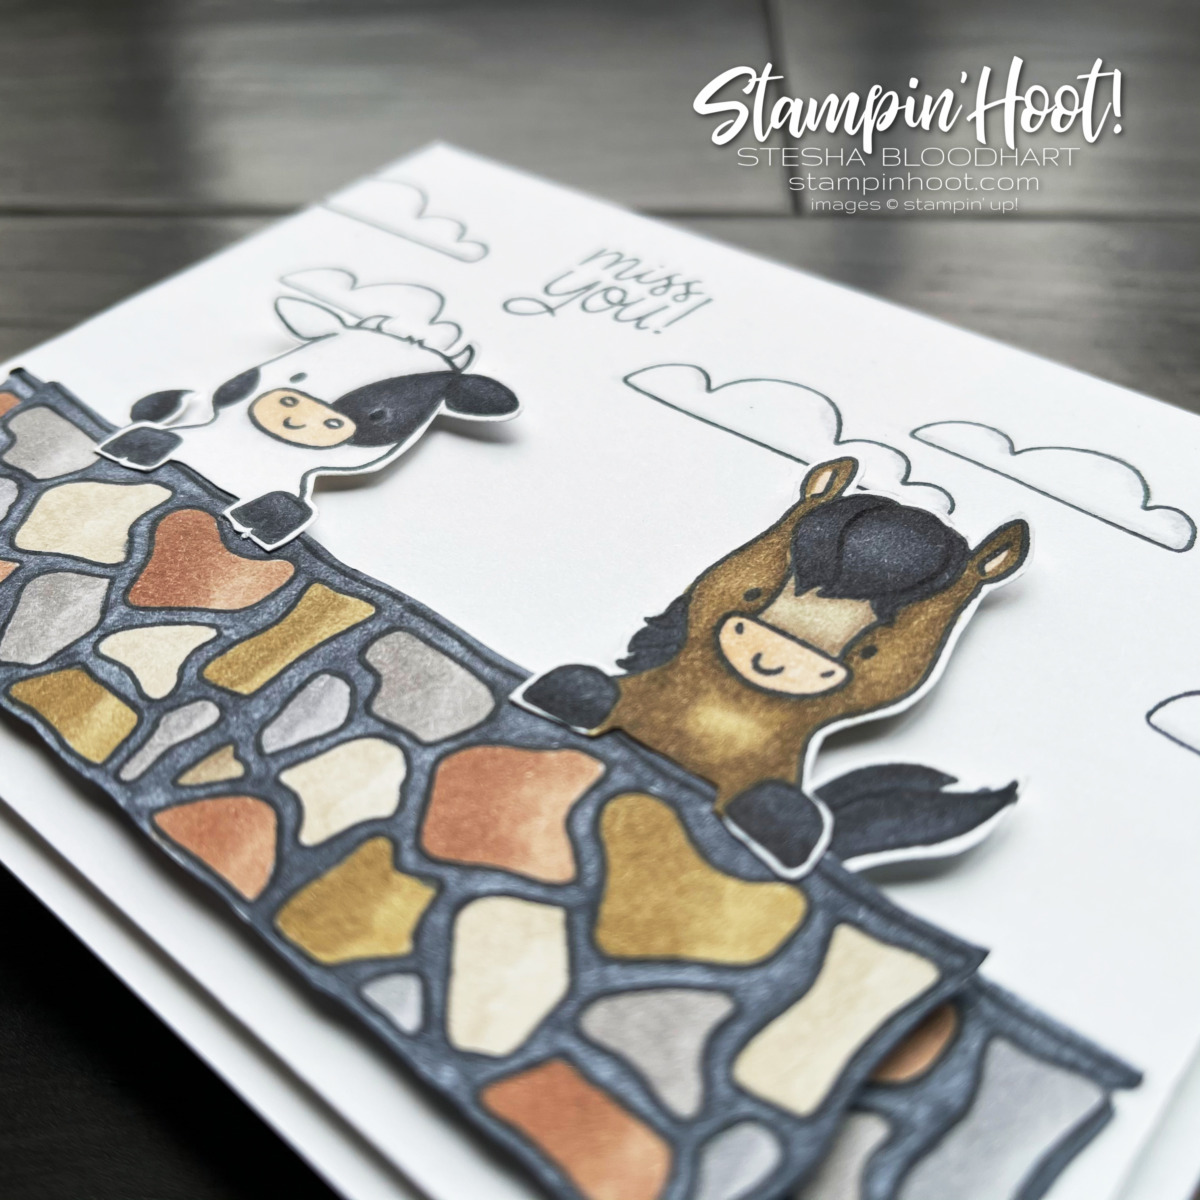 Peekaboo Farm Stamp Set from Stampin' Up! Colored with Stampin' Blends by Stesha Bloodhart, Stampin' Hoot! #tgifc317